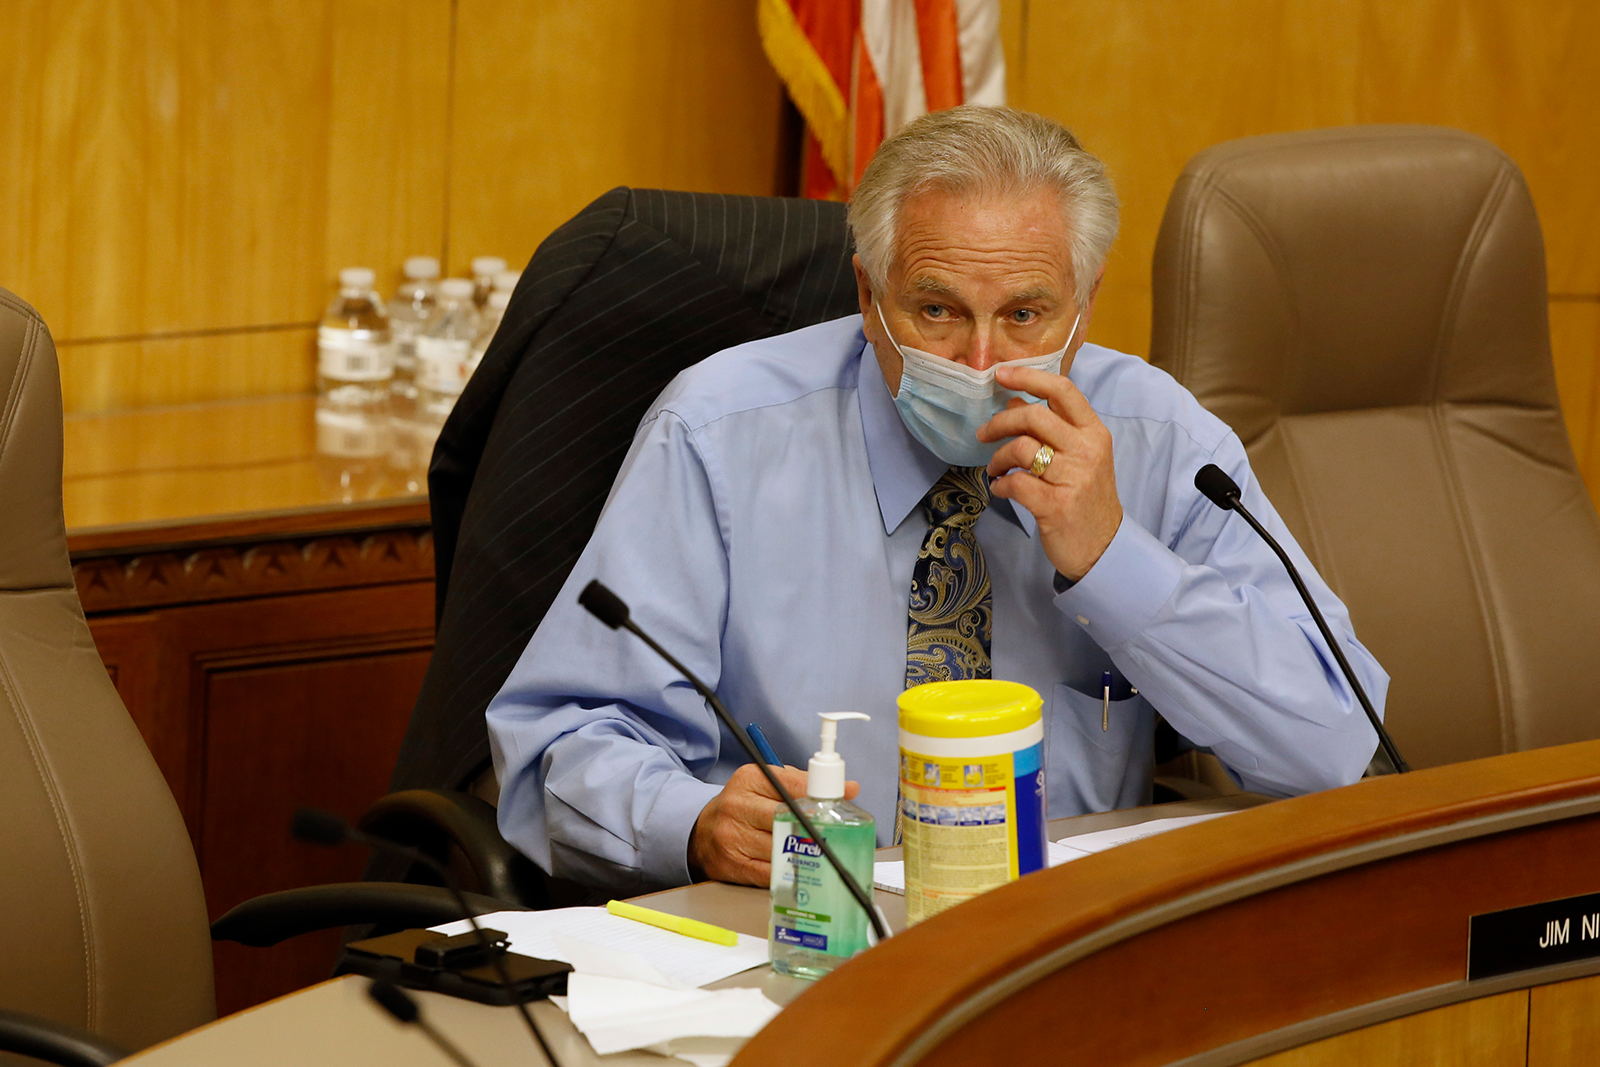 California Sen. Jim Nielsen, adjusts his face mask during a hearing of the special subcommittee on Covid-19, at the Capitol in Sacramento, California on April 16.